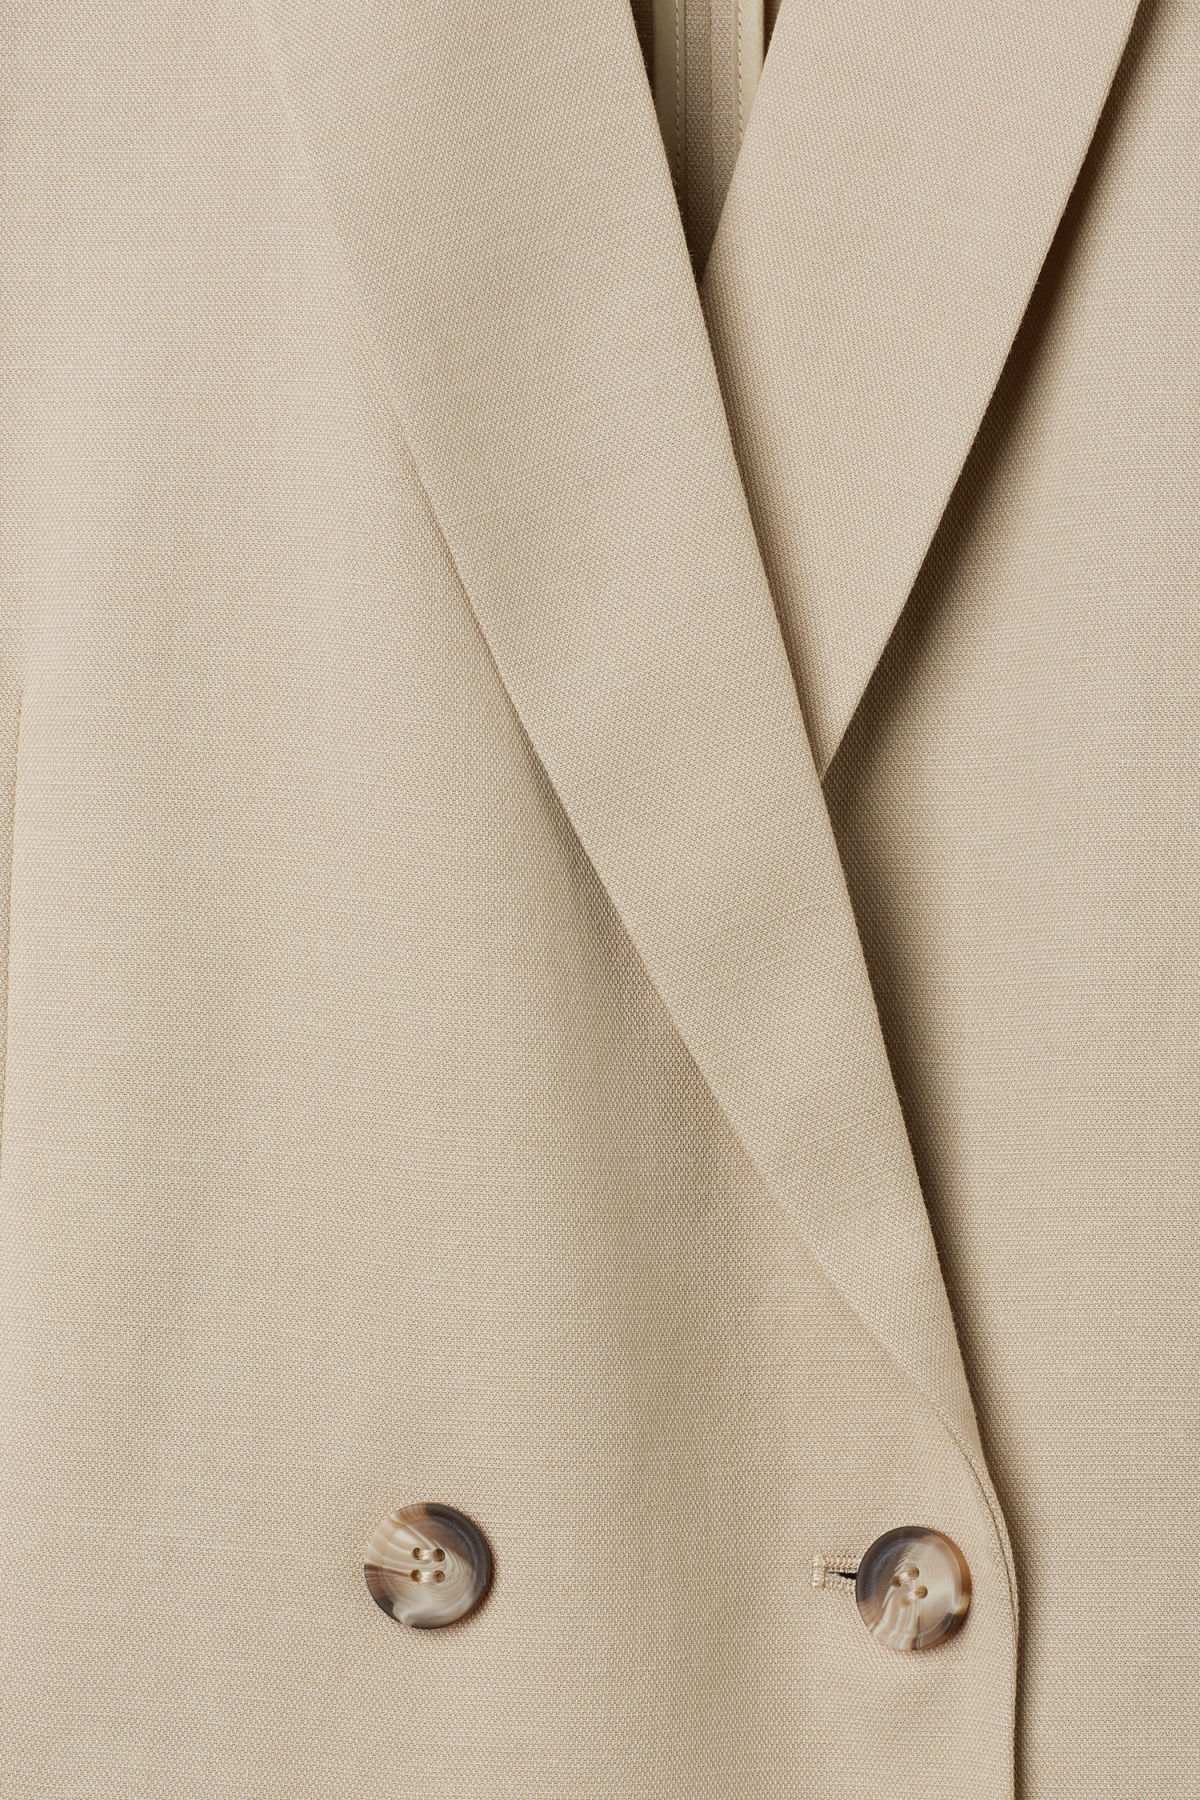 Detailed image of Weekday ink blazer in beige